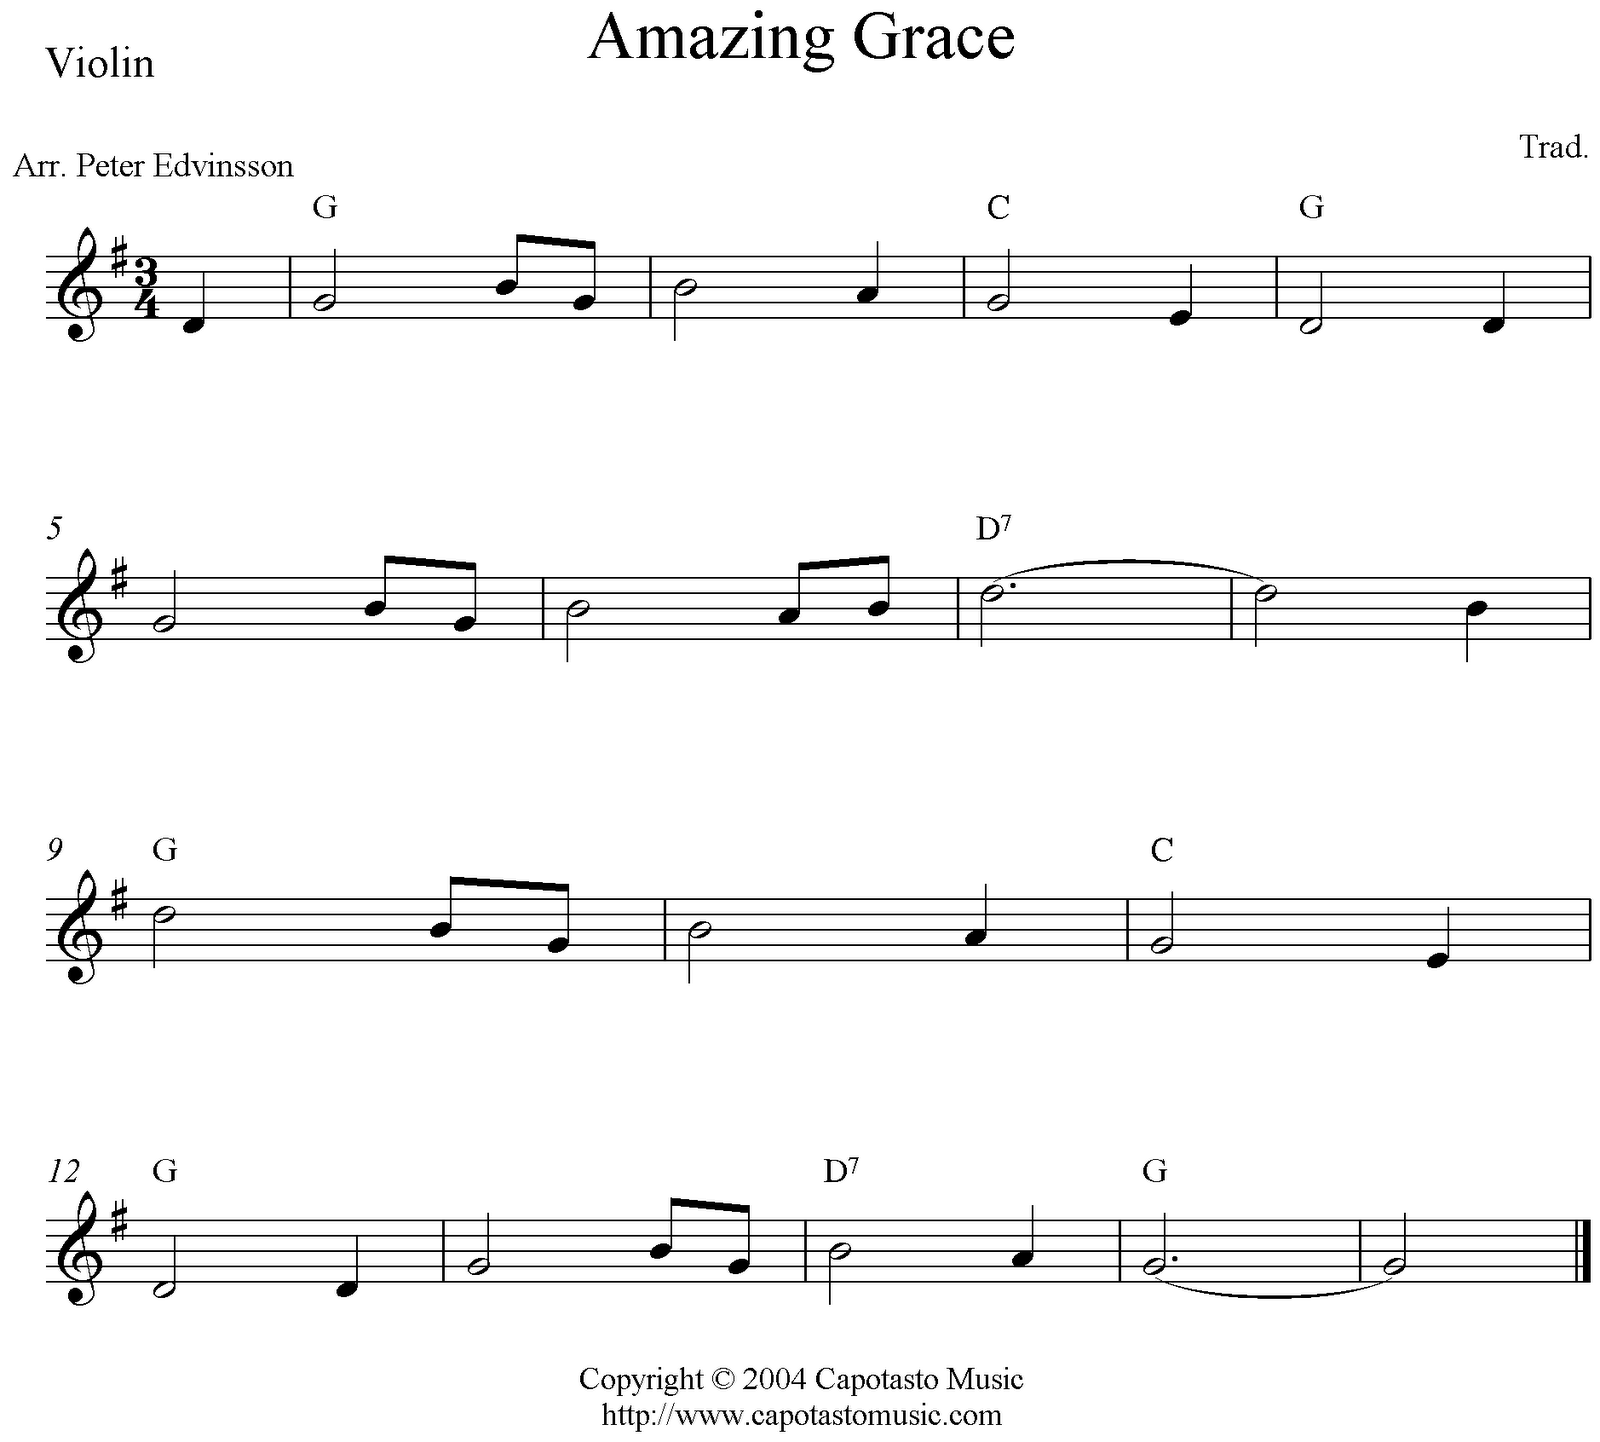 Amazing Grace, free violin sheet music notes